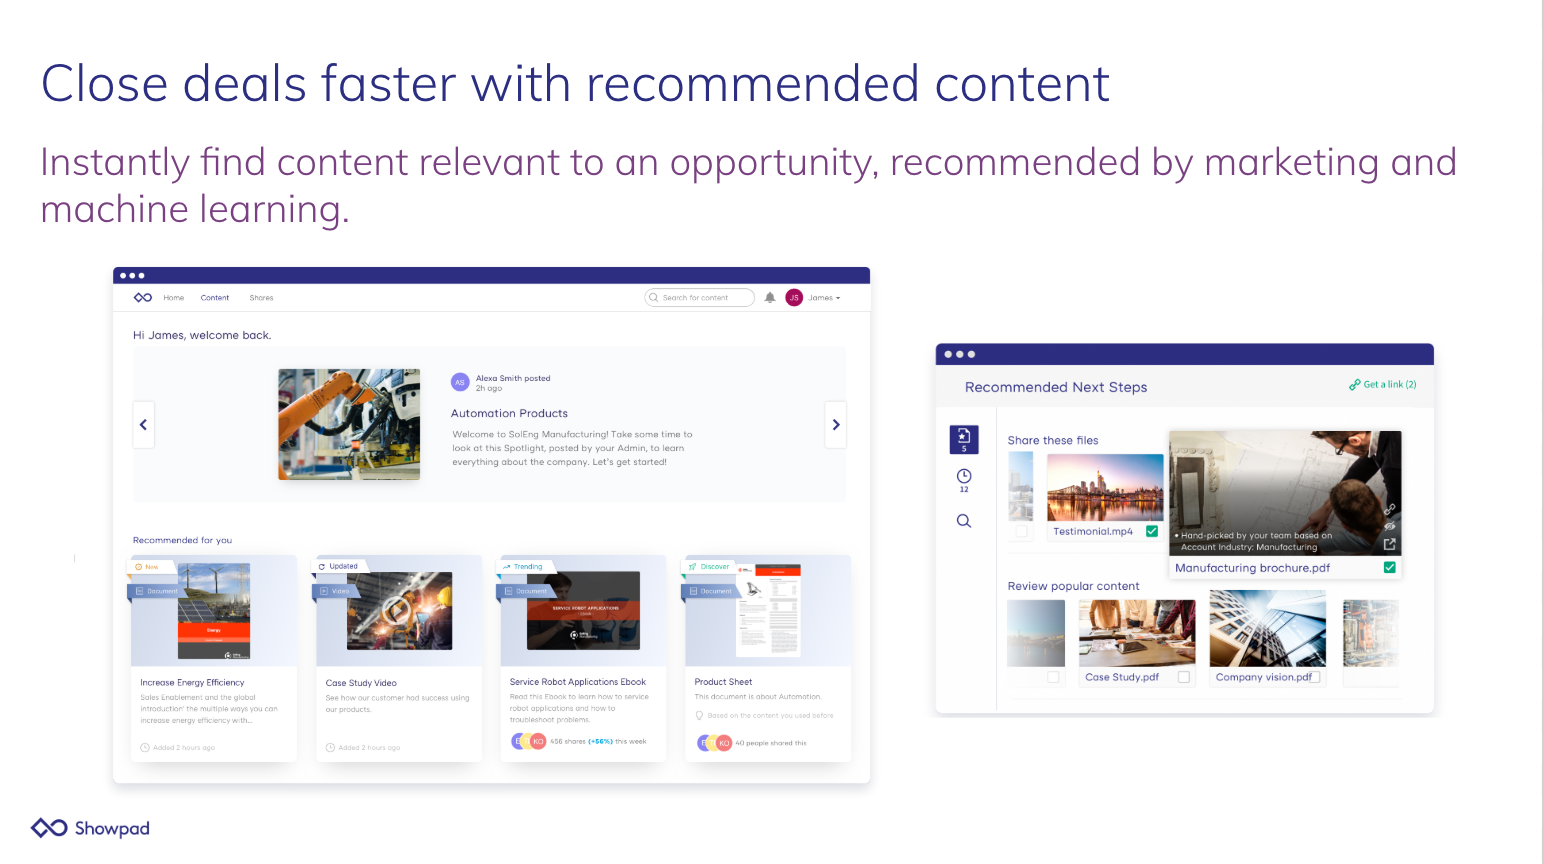 Showpad Content Demo - Close deals faster with recommended content